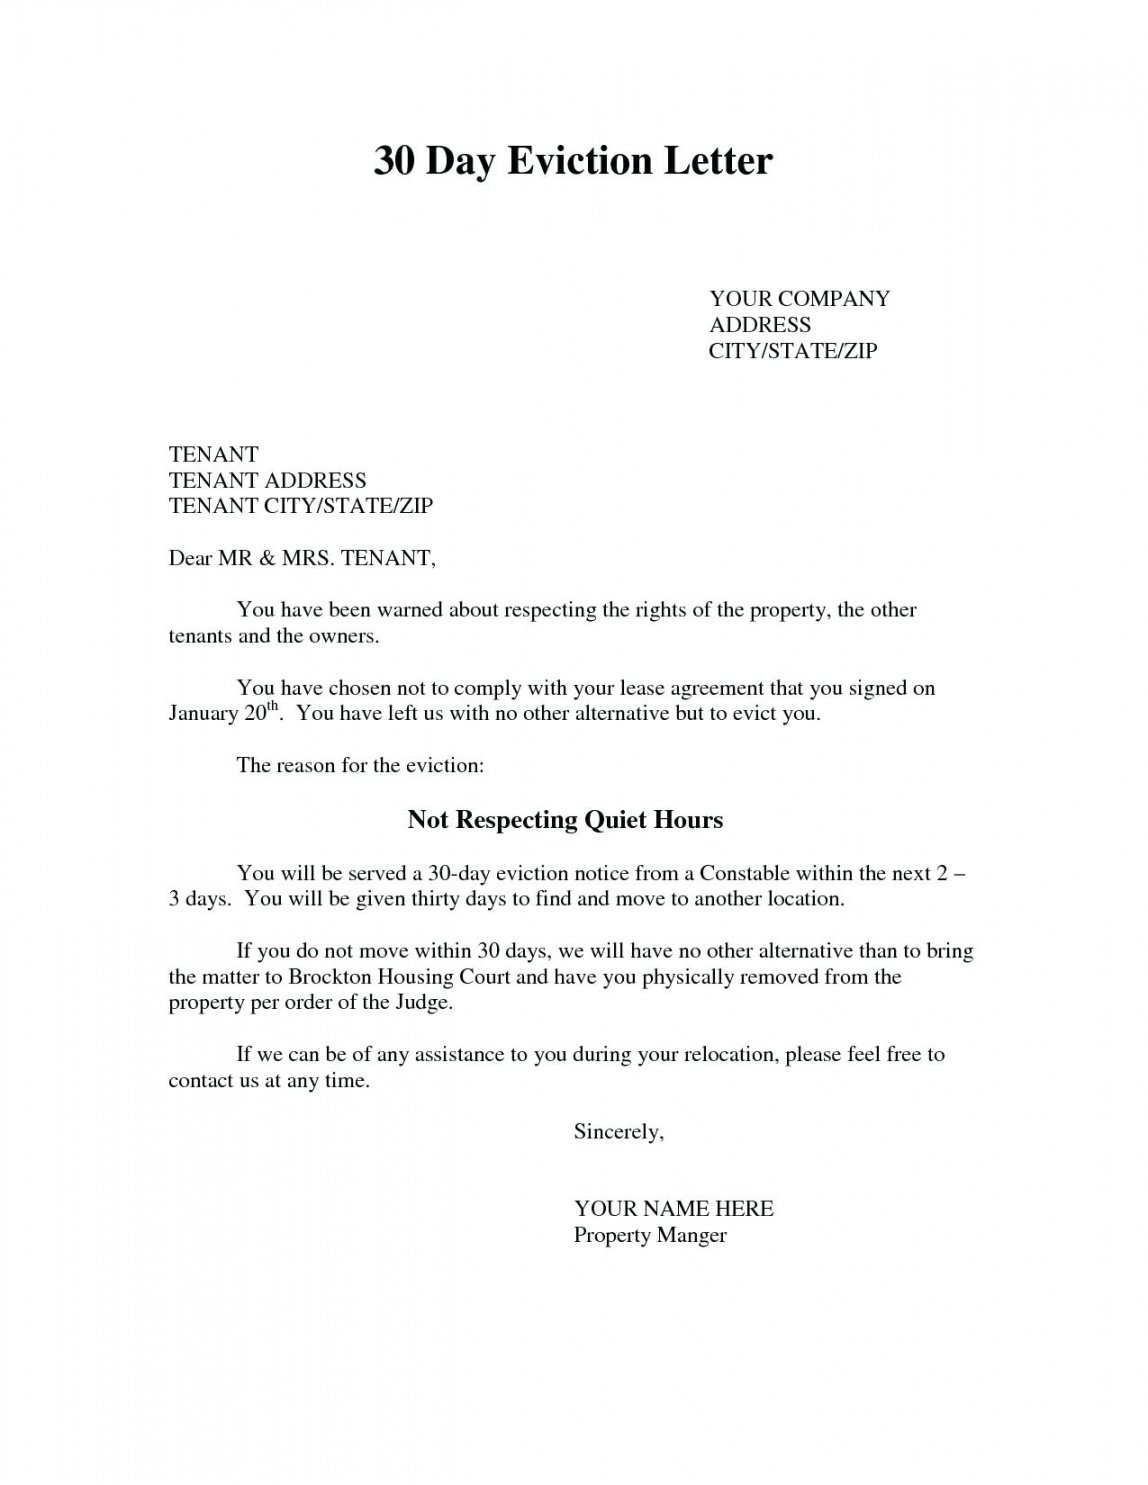 costume 031 eviction notice template word letter templates resume writing an eviction notice template example